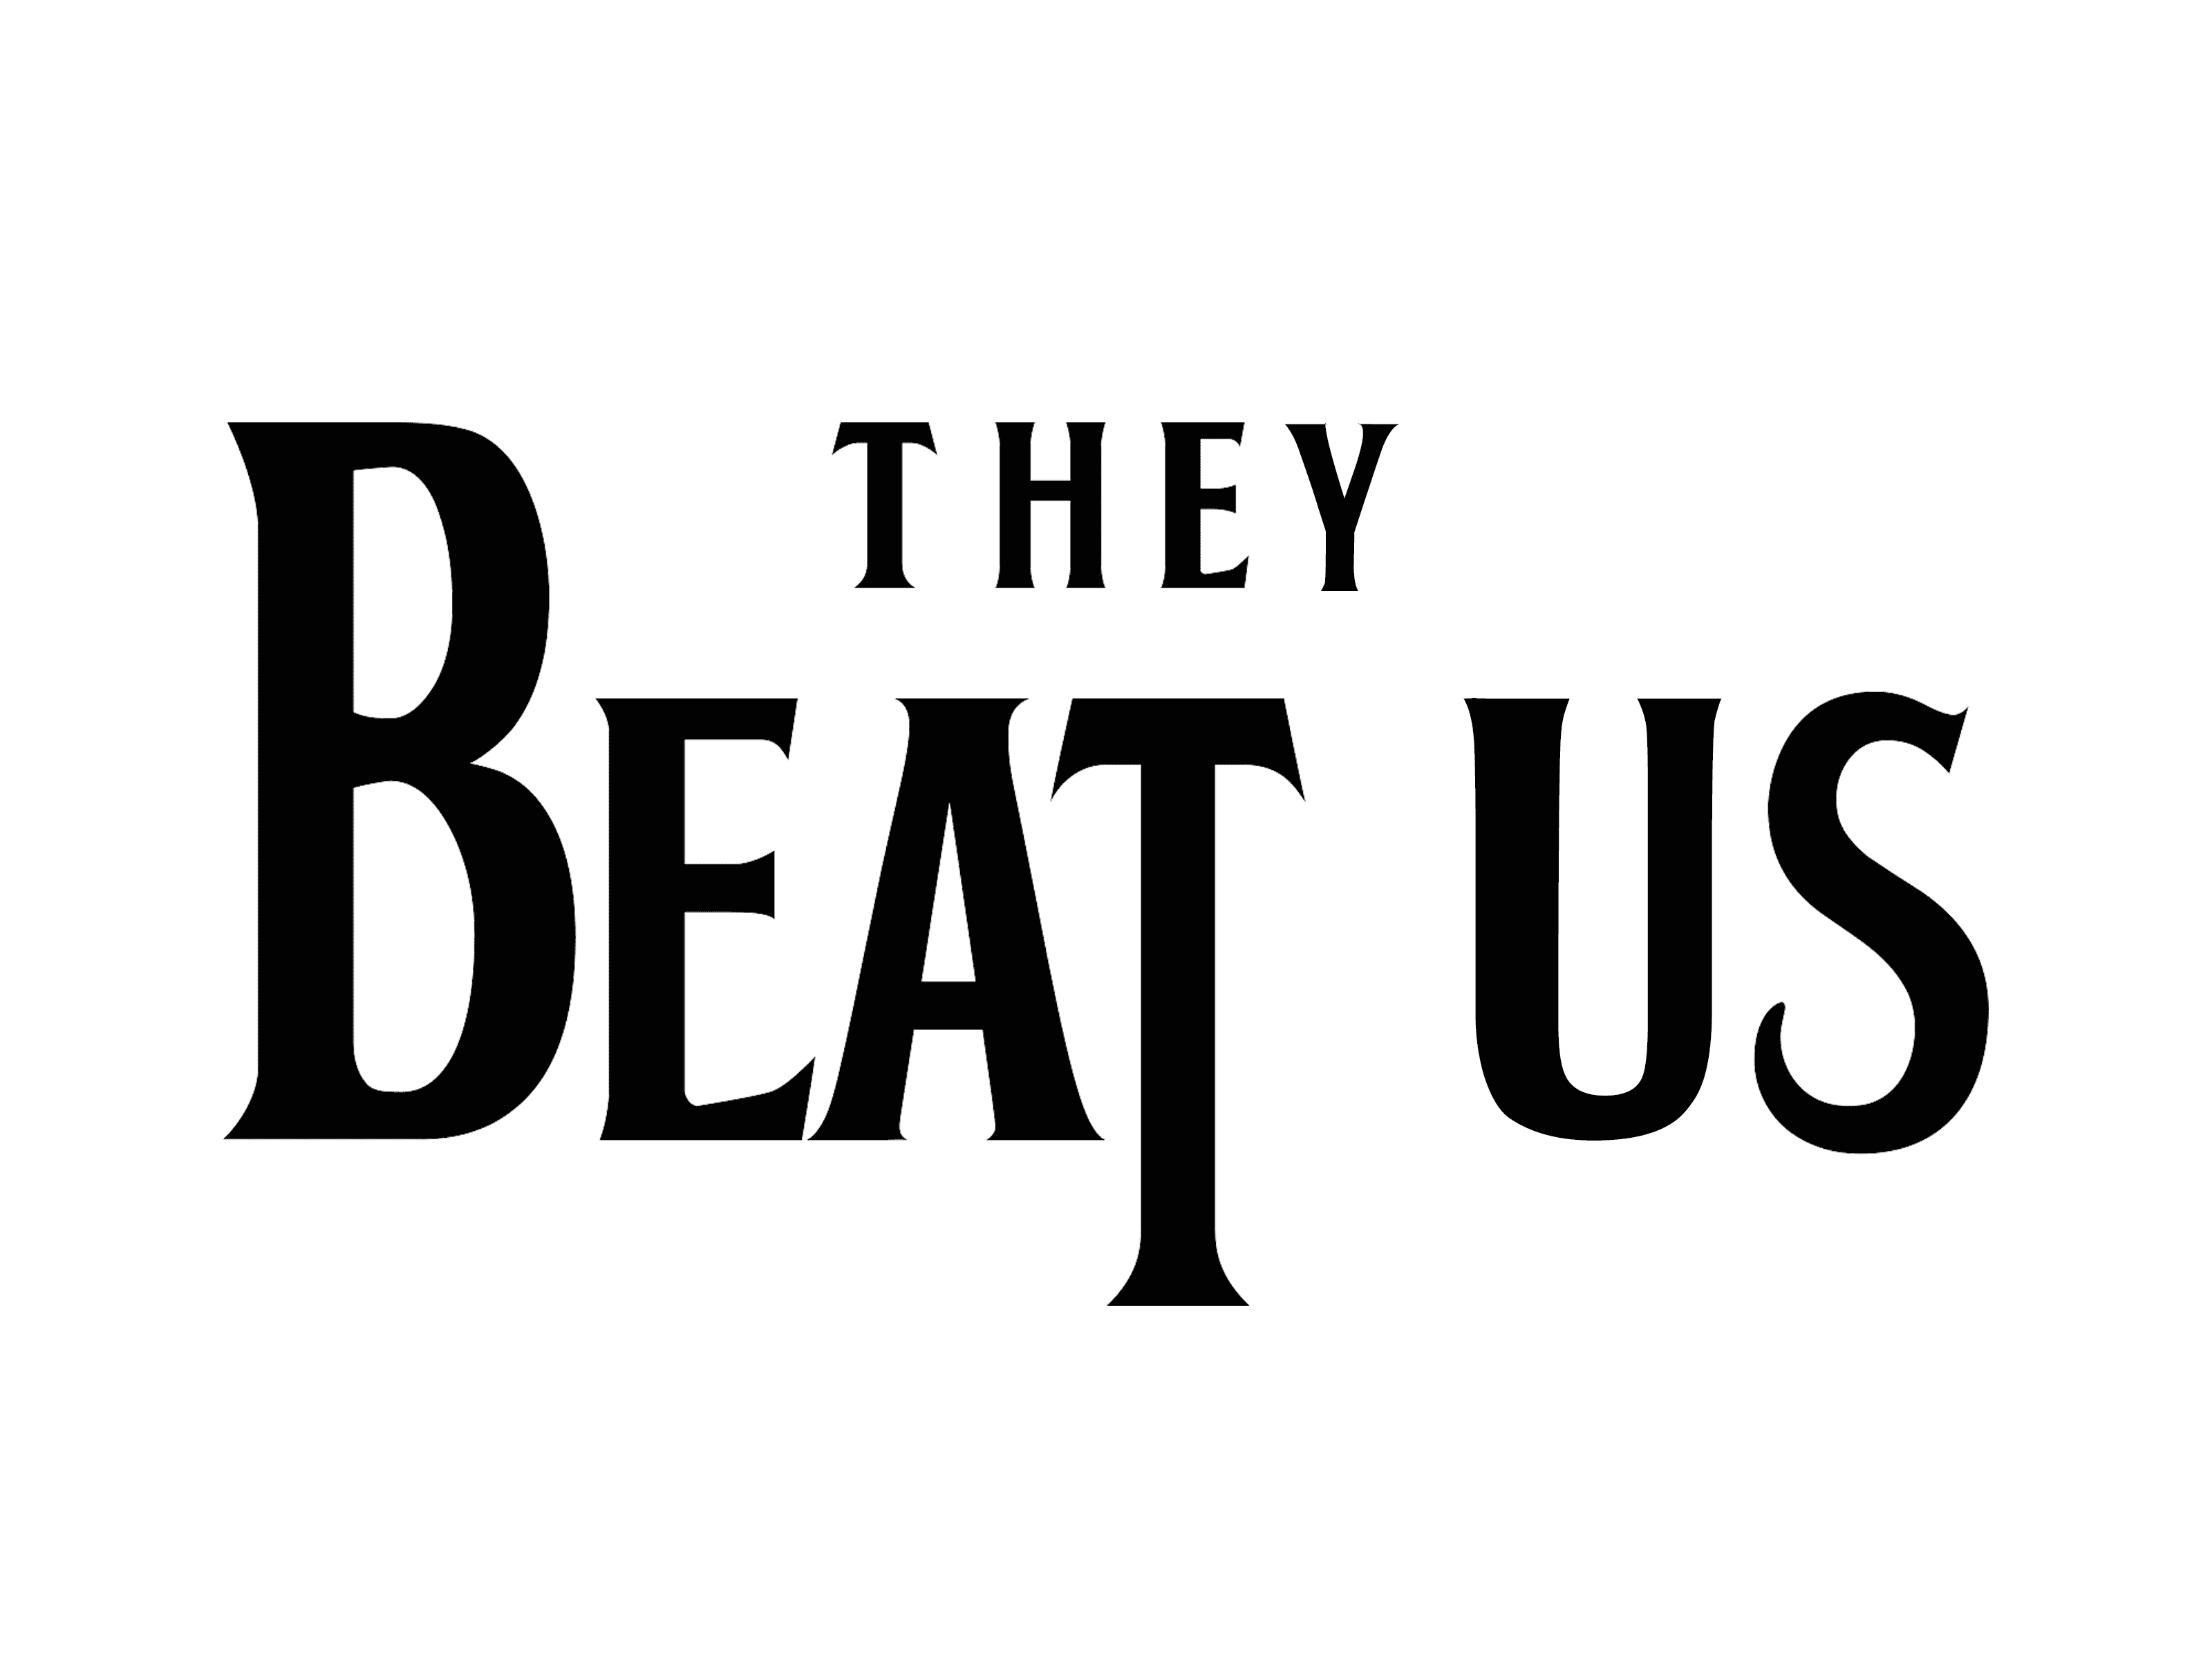 A riff on the Beatles logo – spelling out 'They Beat Us'